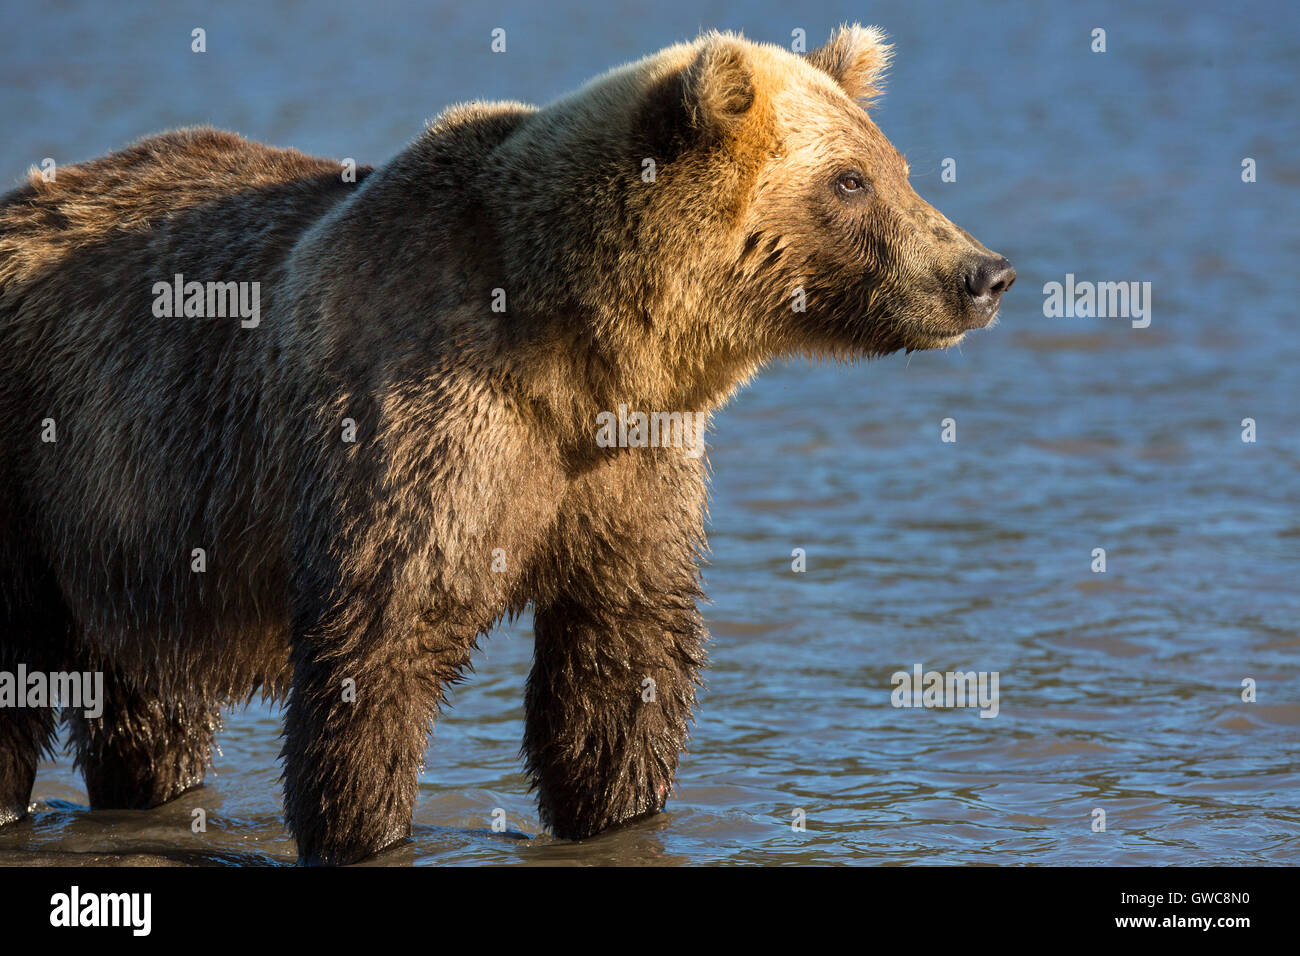 Brown bear catching fish in Kurile Lake of Southern Kamchatka Wildlife Refuge in Russia - Stock Image